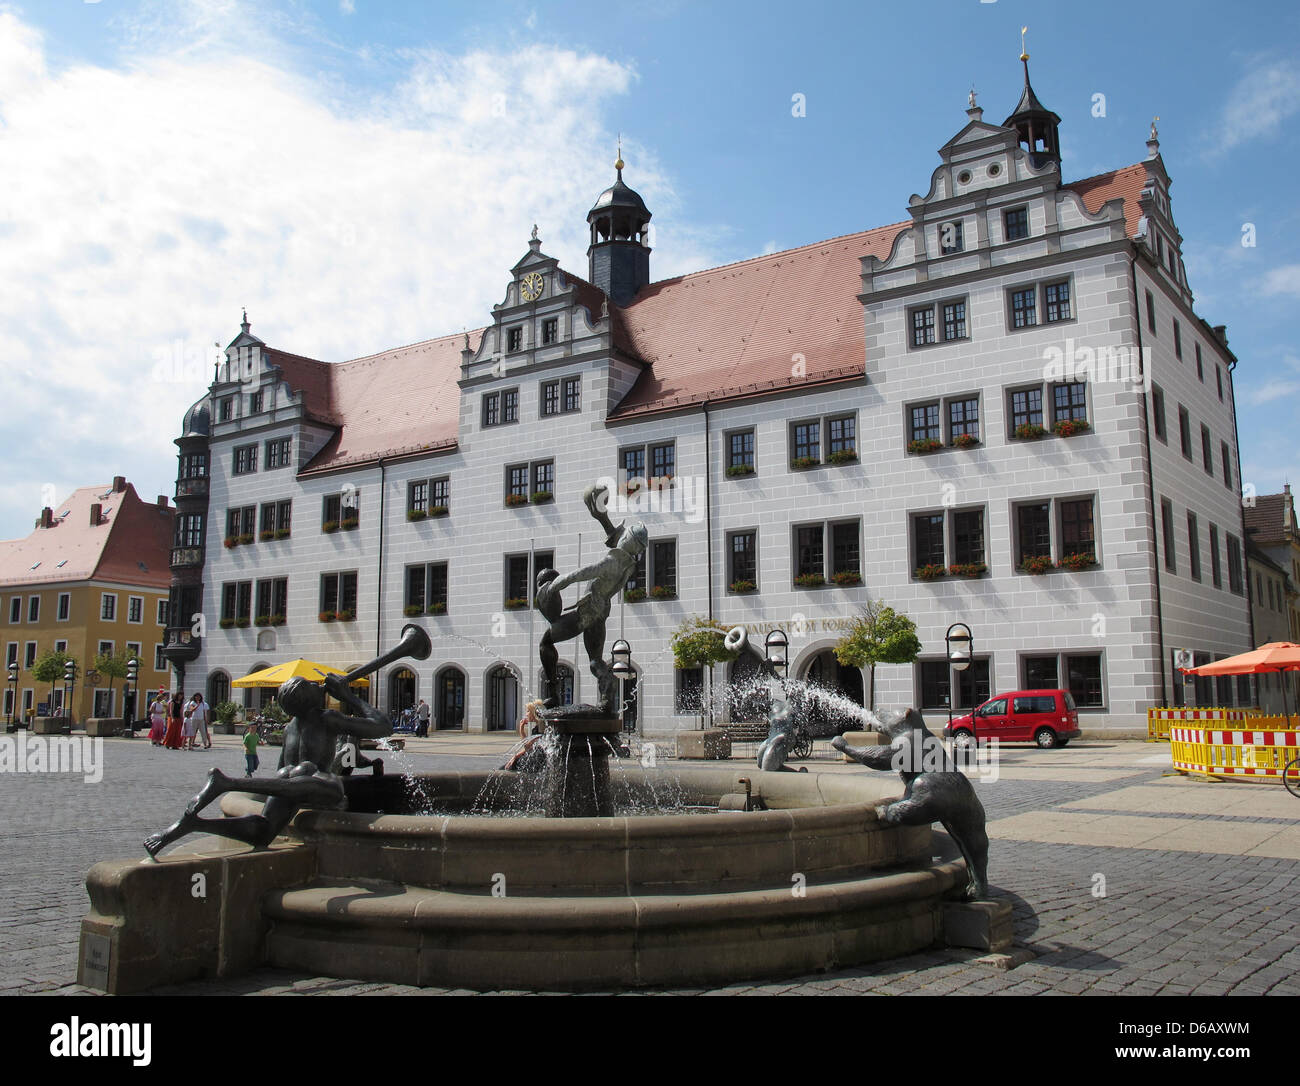 The town hall and fountain situated at the market place of the city Torgau are pictured on 04 August 2012, Germany. Stock Photo